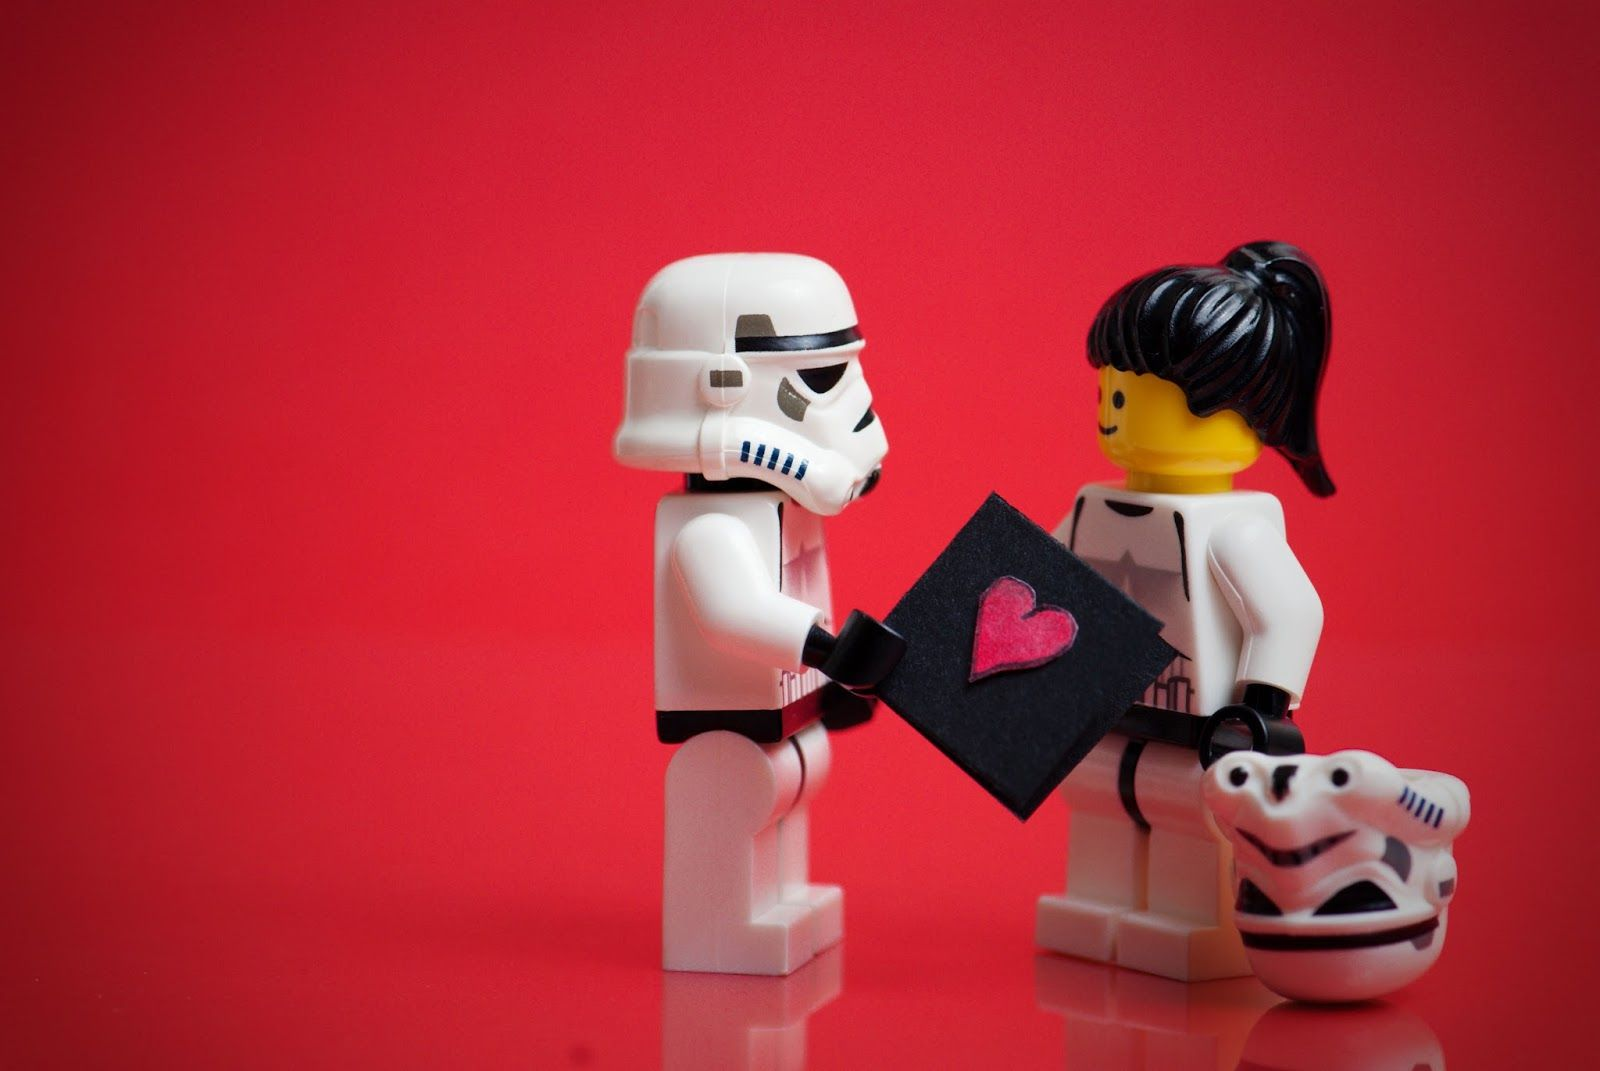 DownloadStar Star War Romantic Wallpaper For PC. Open the Image and save the image on  your device....